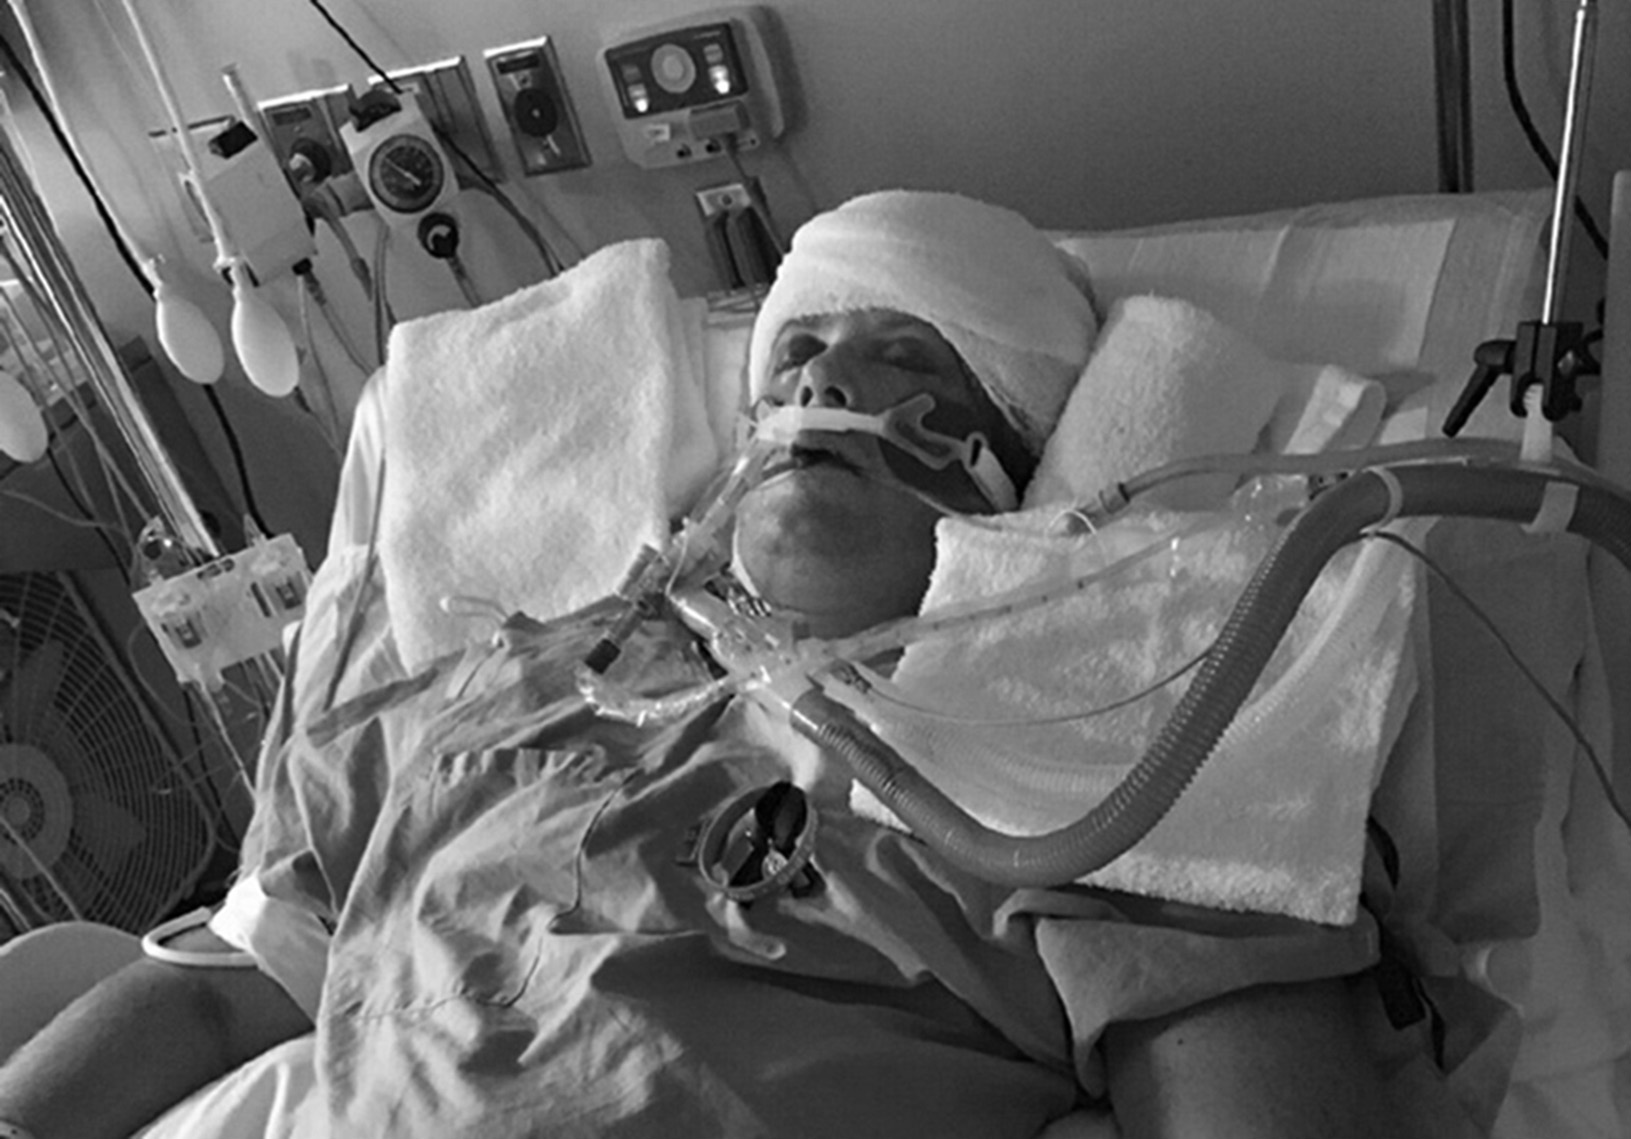 Alive Inside How A Houston Hospital Restores Patients